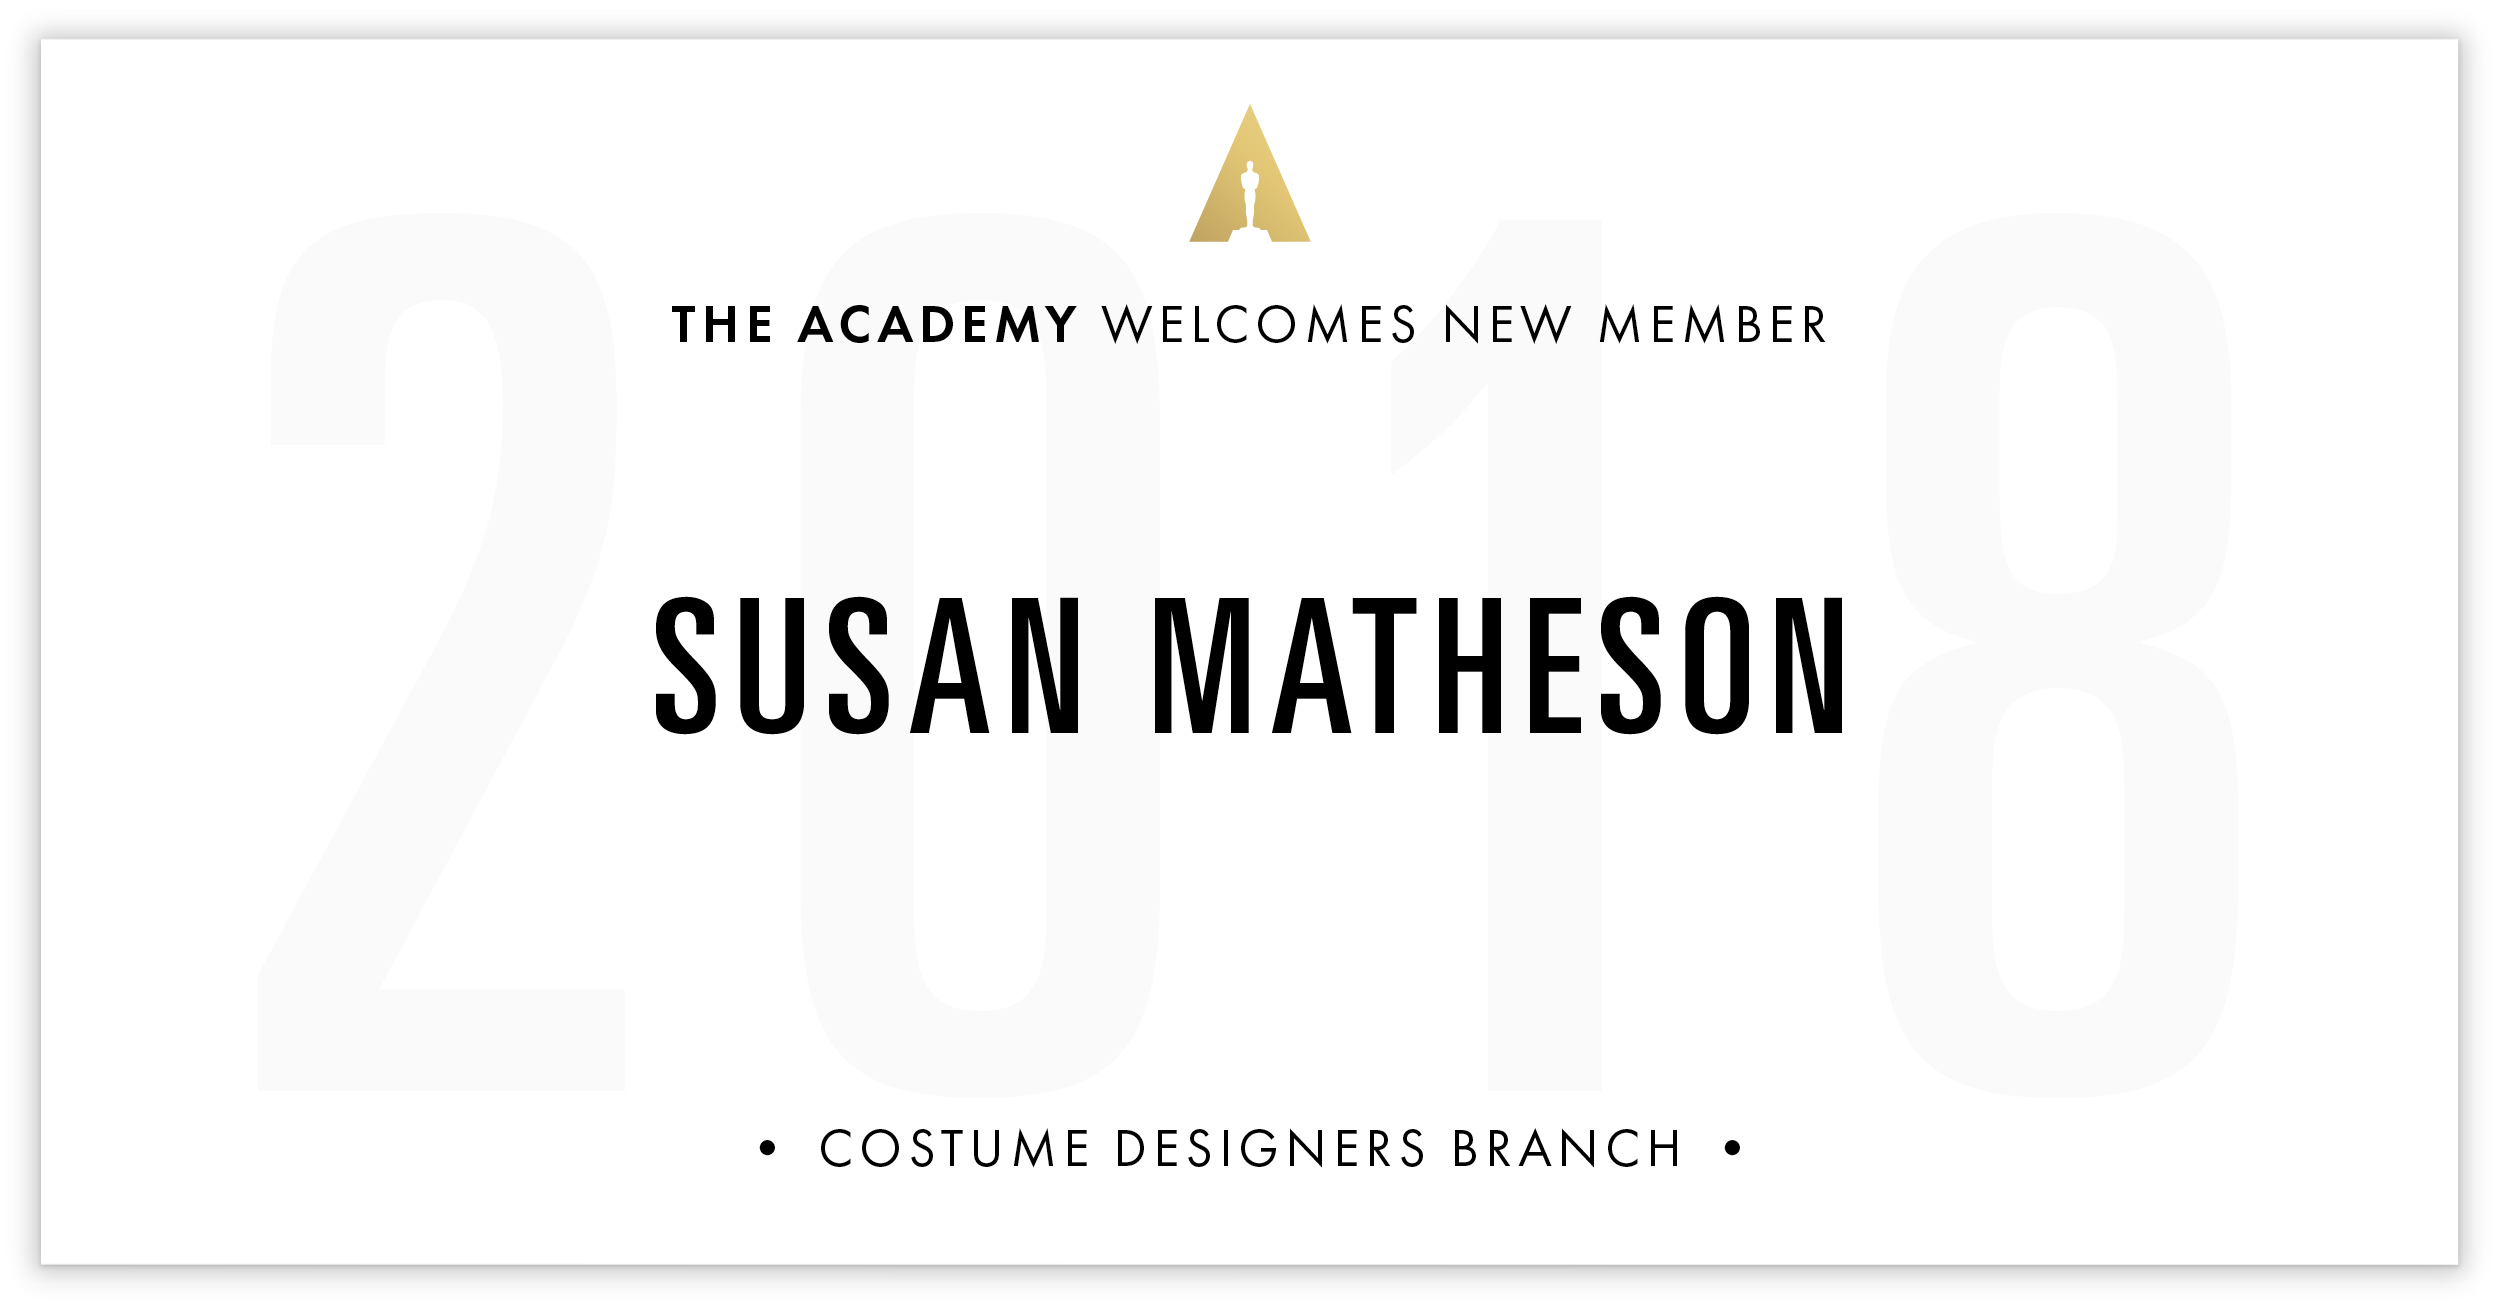 Susan Matheson is invited!